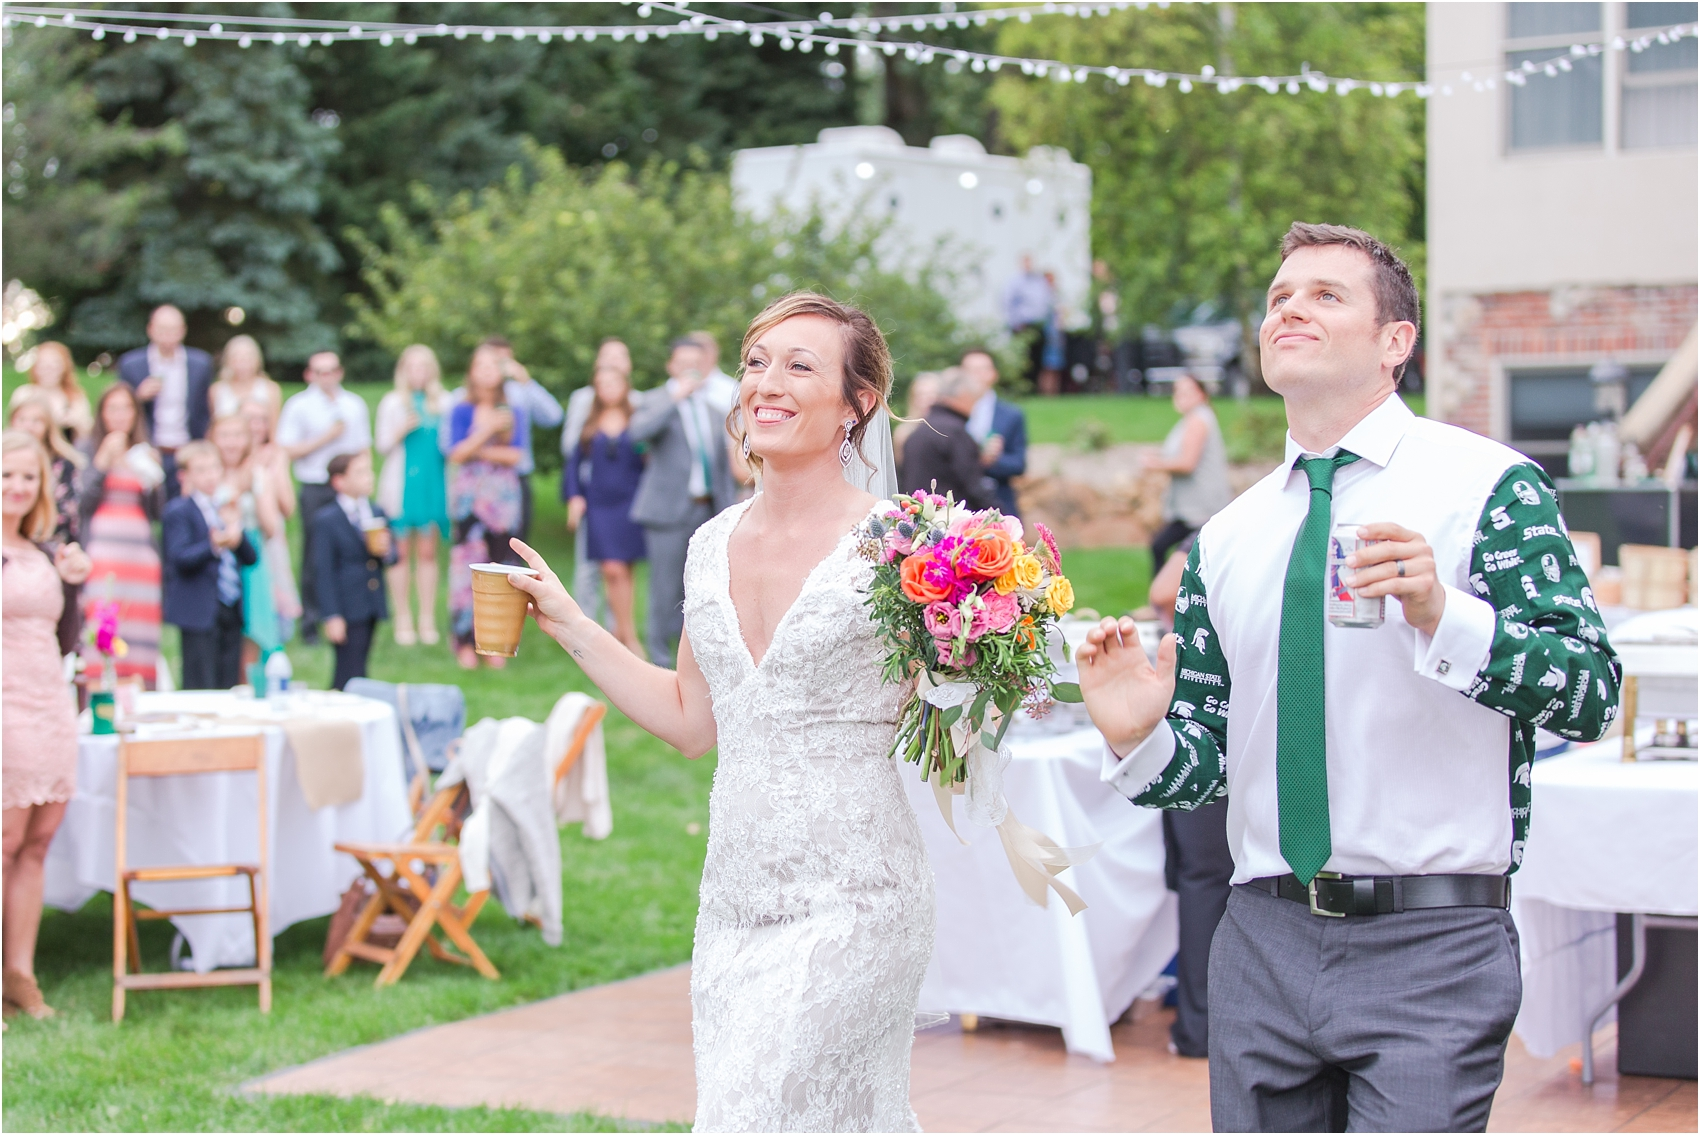 romantic-intimate-backyard-wedding-photos-at-private-estate-in-ann-arbor-mi-by-courtney-carolyn-photography_0128.jpg